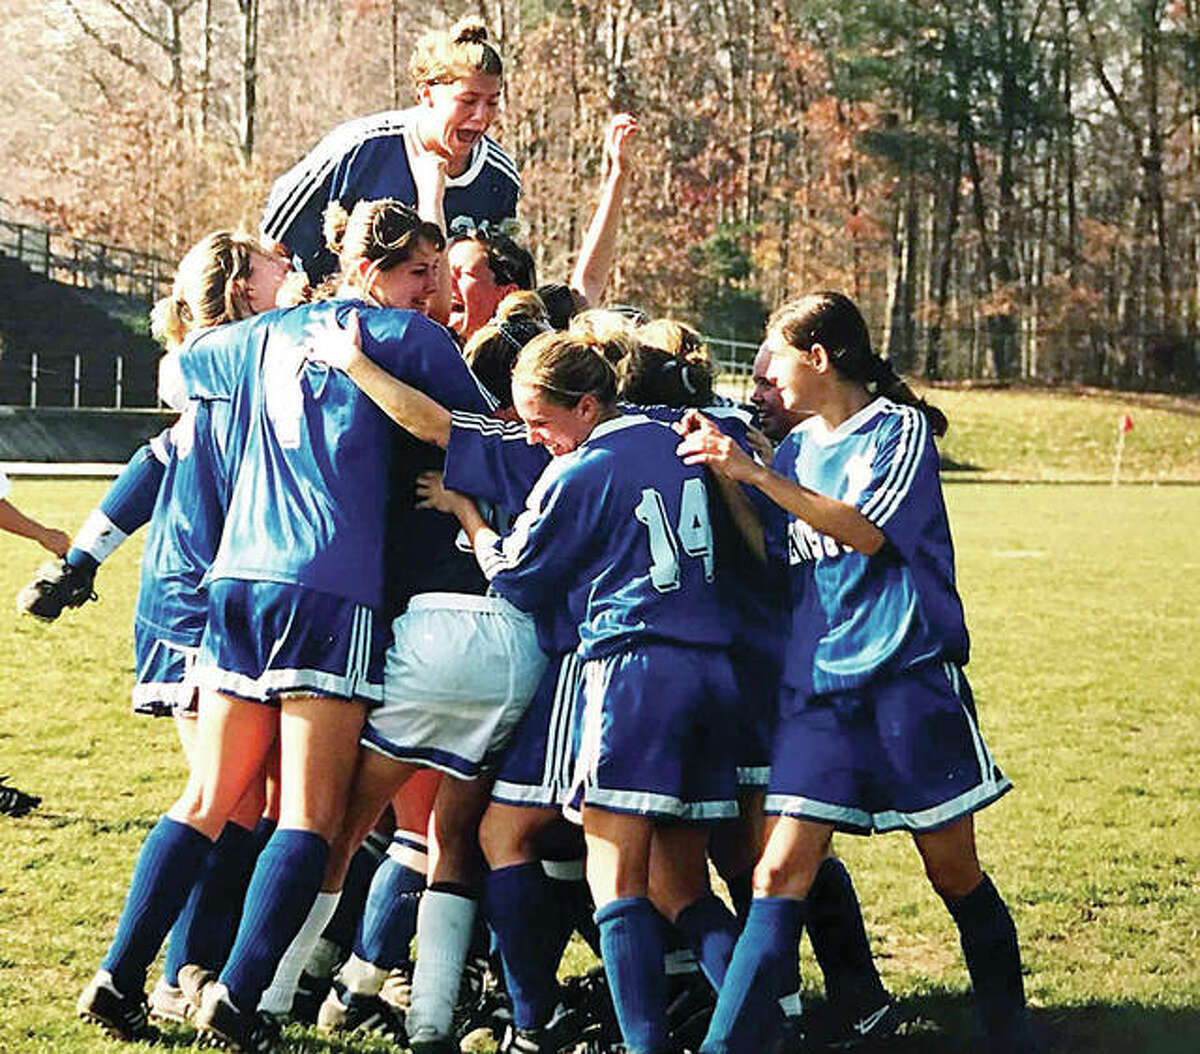 Angie Bode, top, jumps on her celebrating LCCC teammates after they won the NJCAA women's national soccer championship in Baltimore.